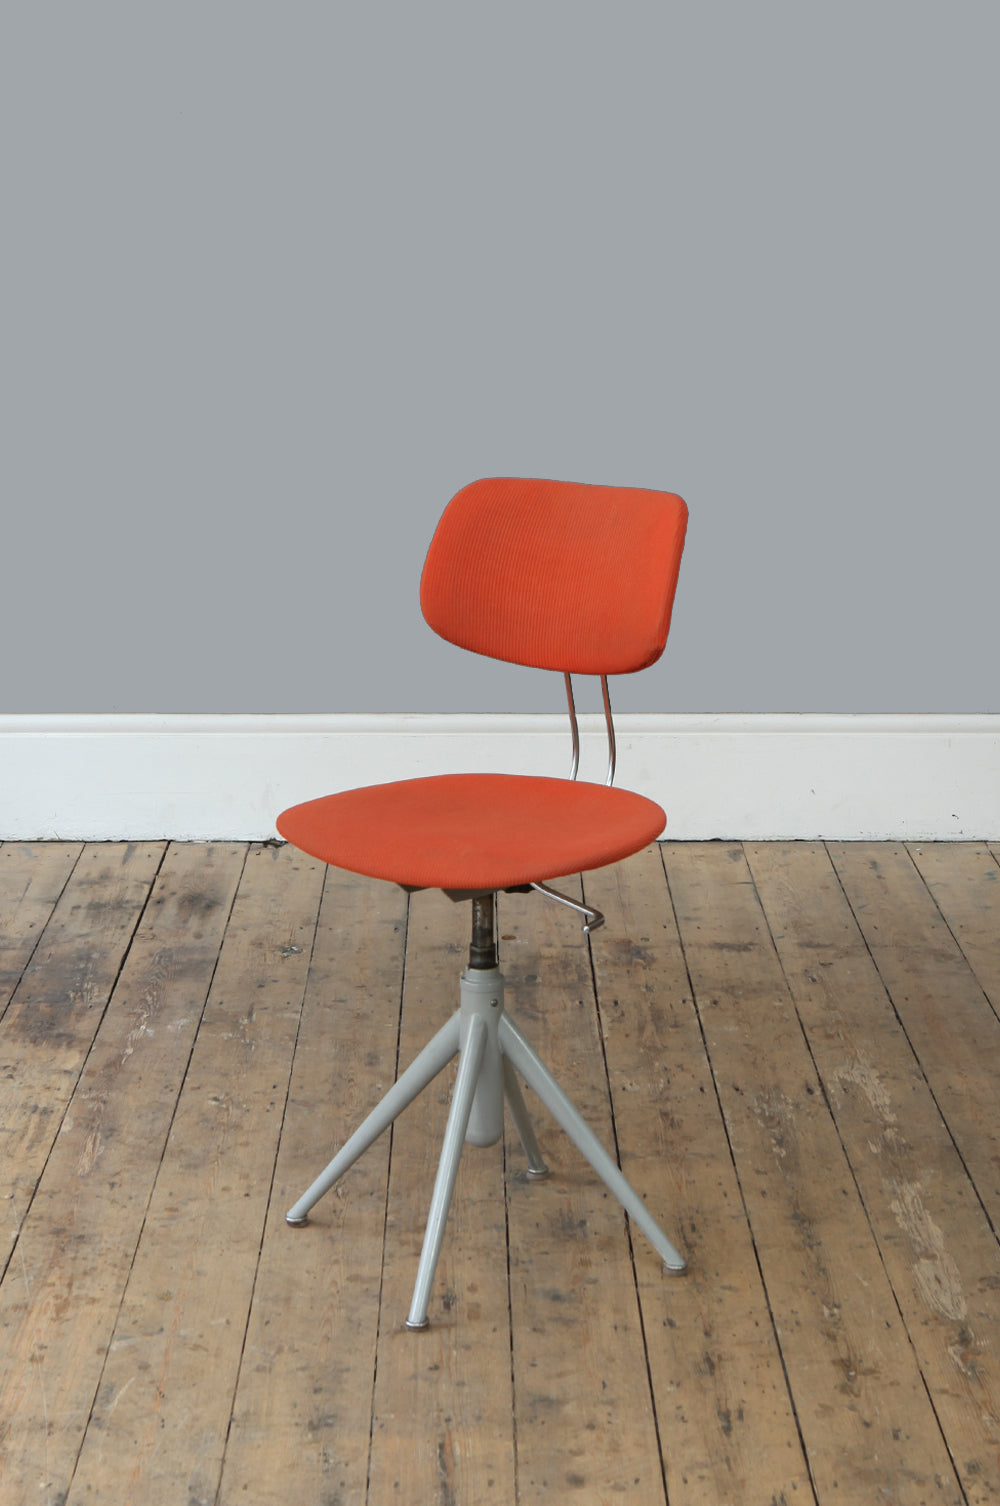 Swell Coral Corduroy Desk Chair Forest London Evergreenethics Interior Chair Design Evergreenethicsorg